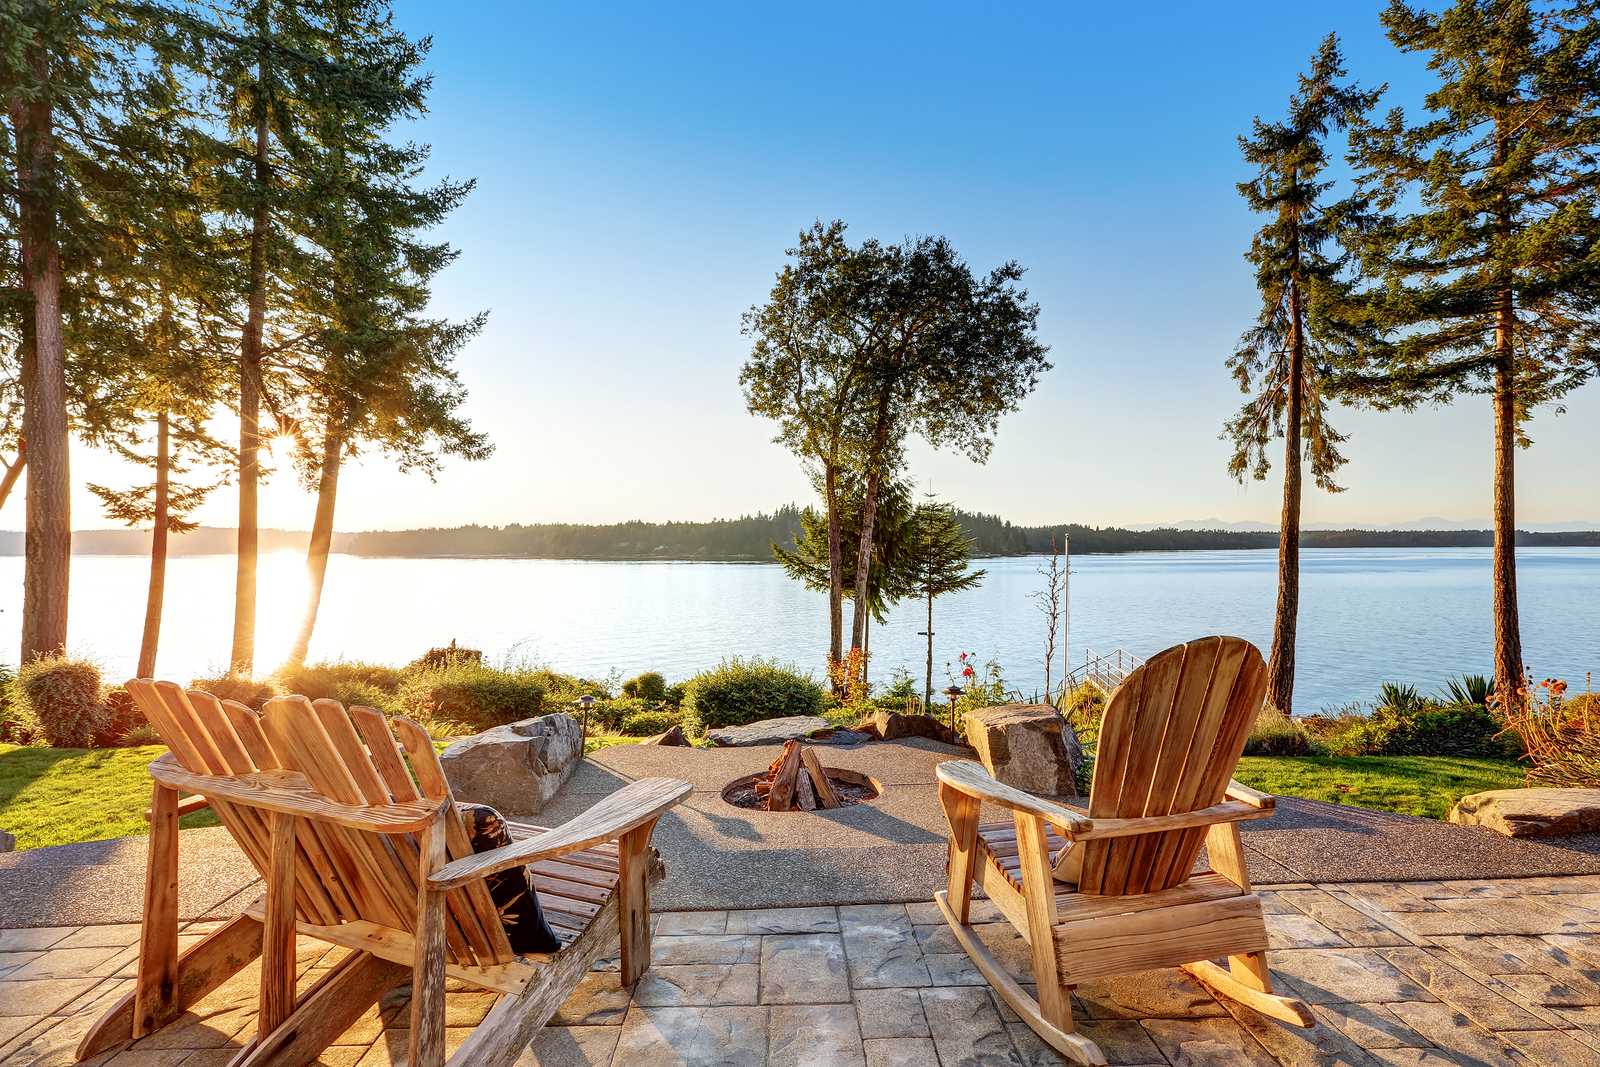 Back yard of waterfront house with adirondack chairs and fire pit. Beautiful water view at sunset. Northwest USA